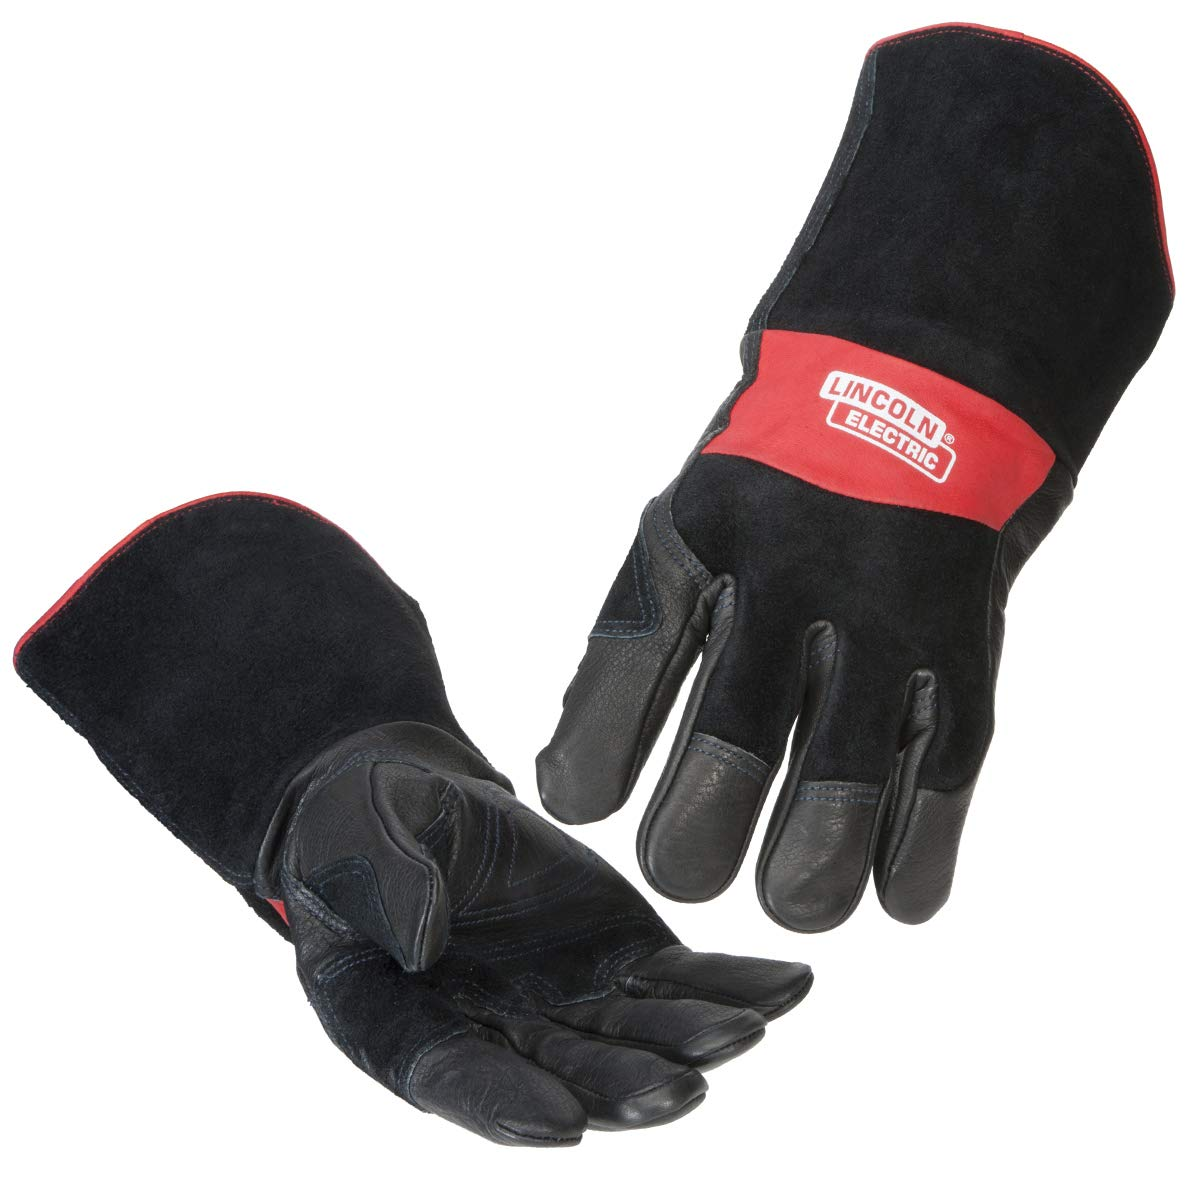 Lincoln Electric Premium Leather MIG Stick Welding Gloves | Heat Resistance & Dexterity| Medium | K2980-M by Lincoln Electric